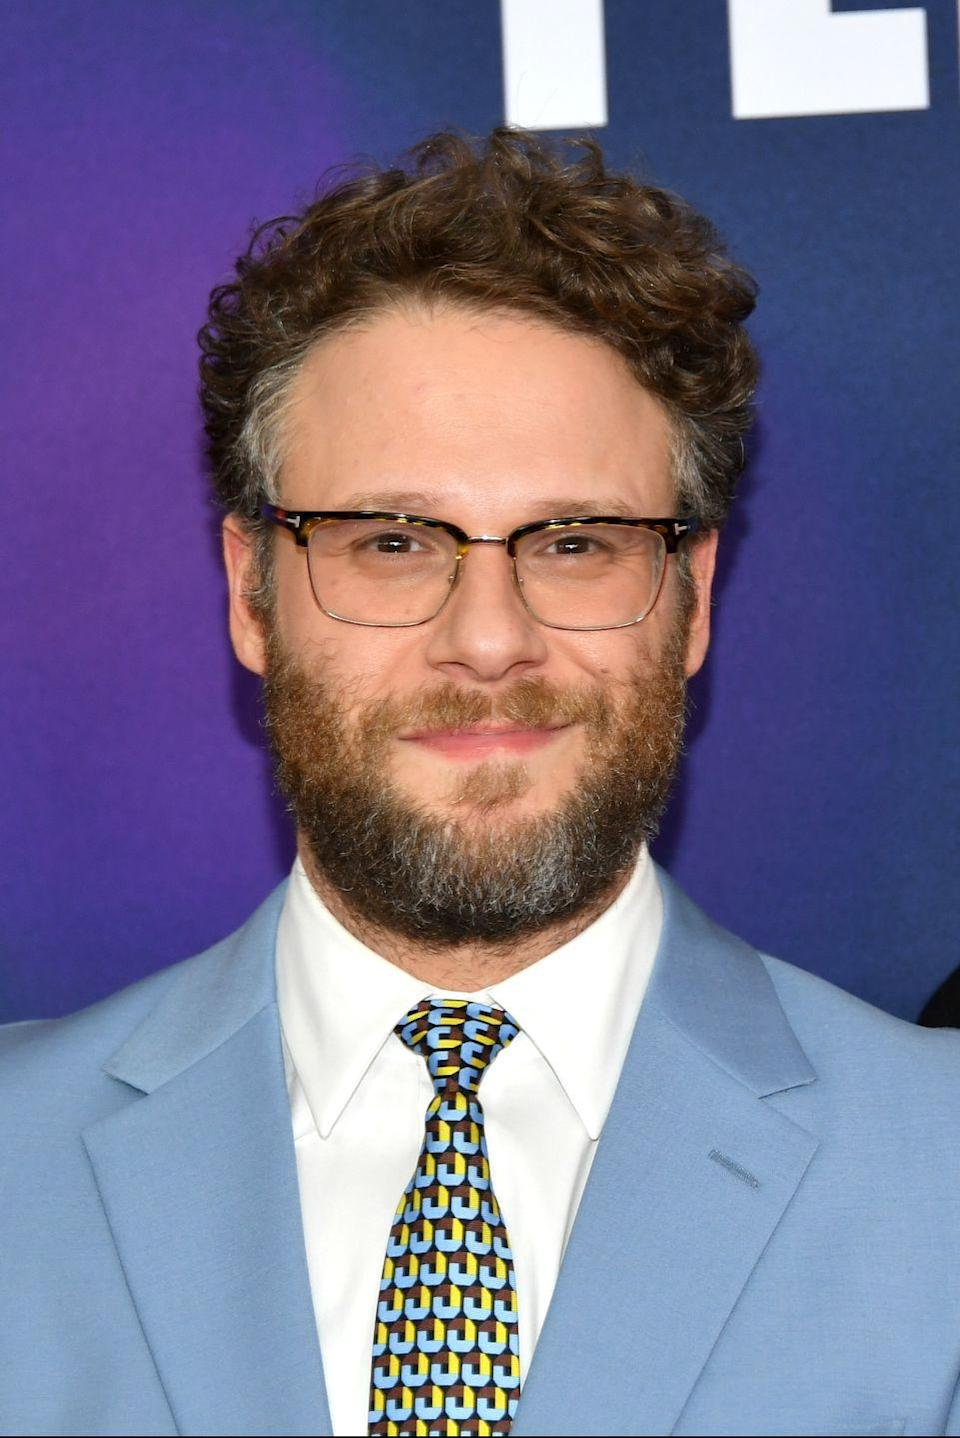 <p>When political satire comedy <em>The Interview </em>was released, it not only stirred up the critics, but it also caused an international incident between the United States and North Korea. NBD.</p>